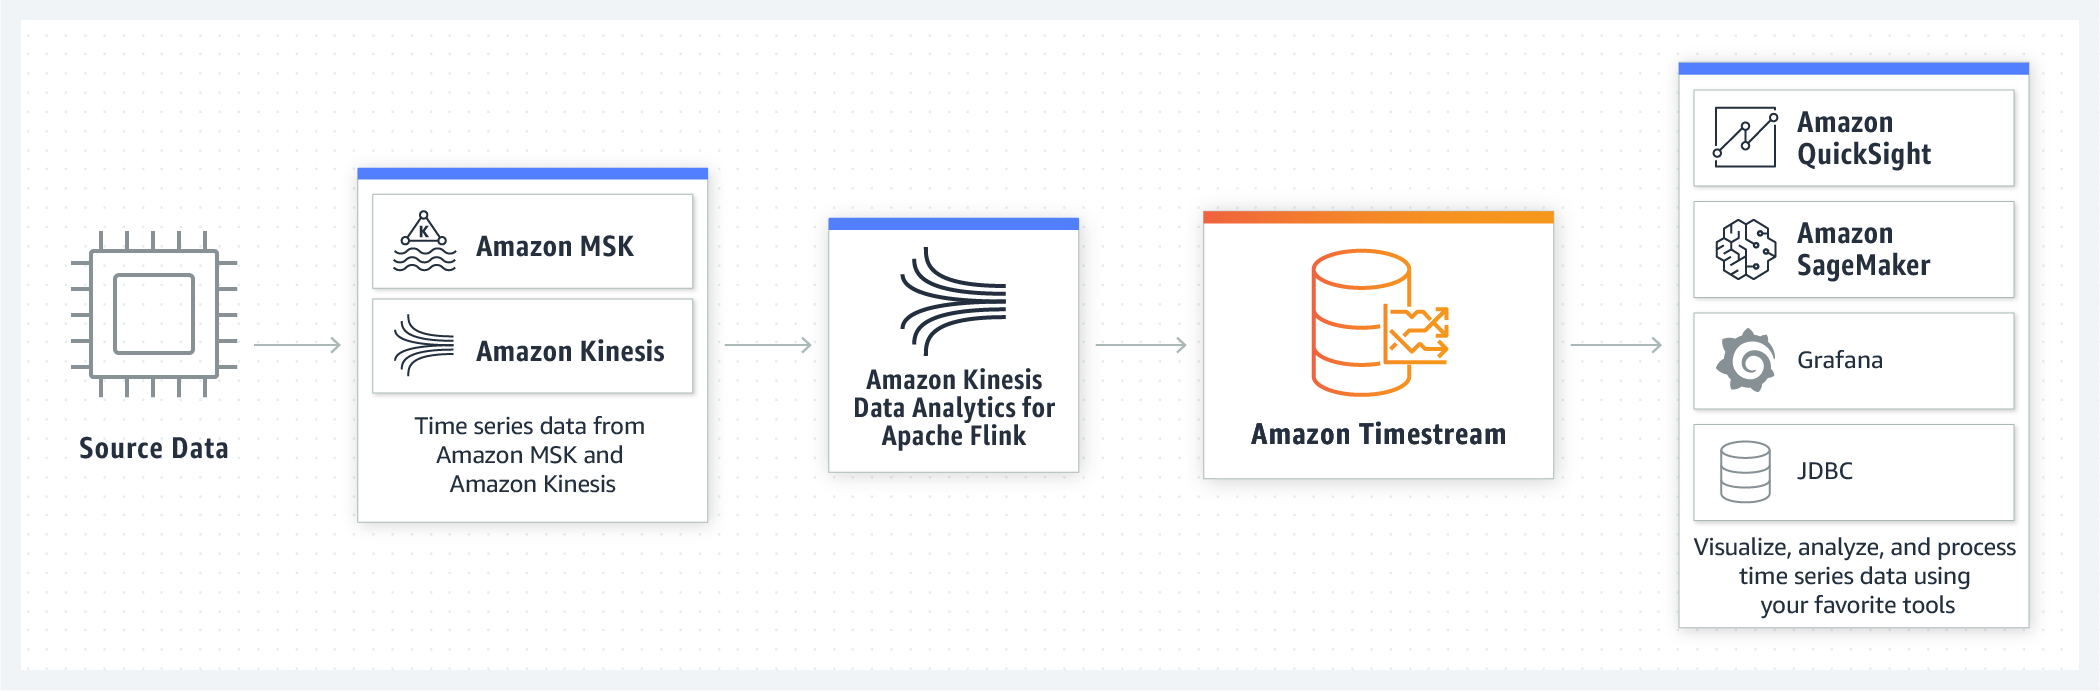 product-page-diagram_Amazon-Timestream_Analytics@2x